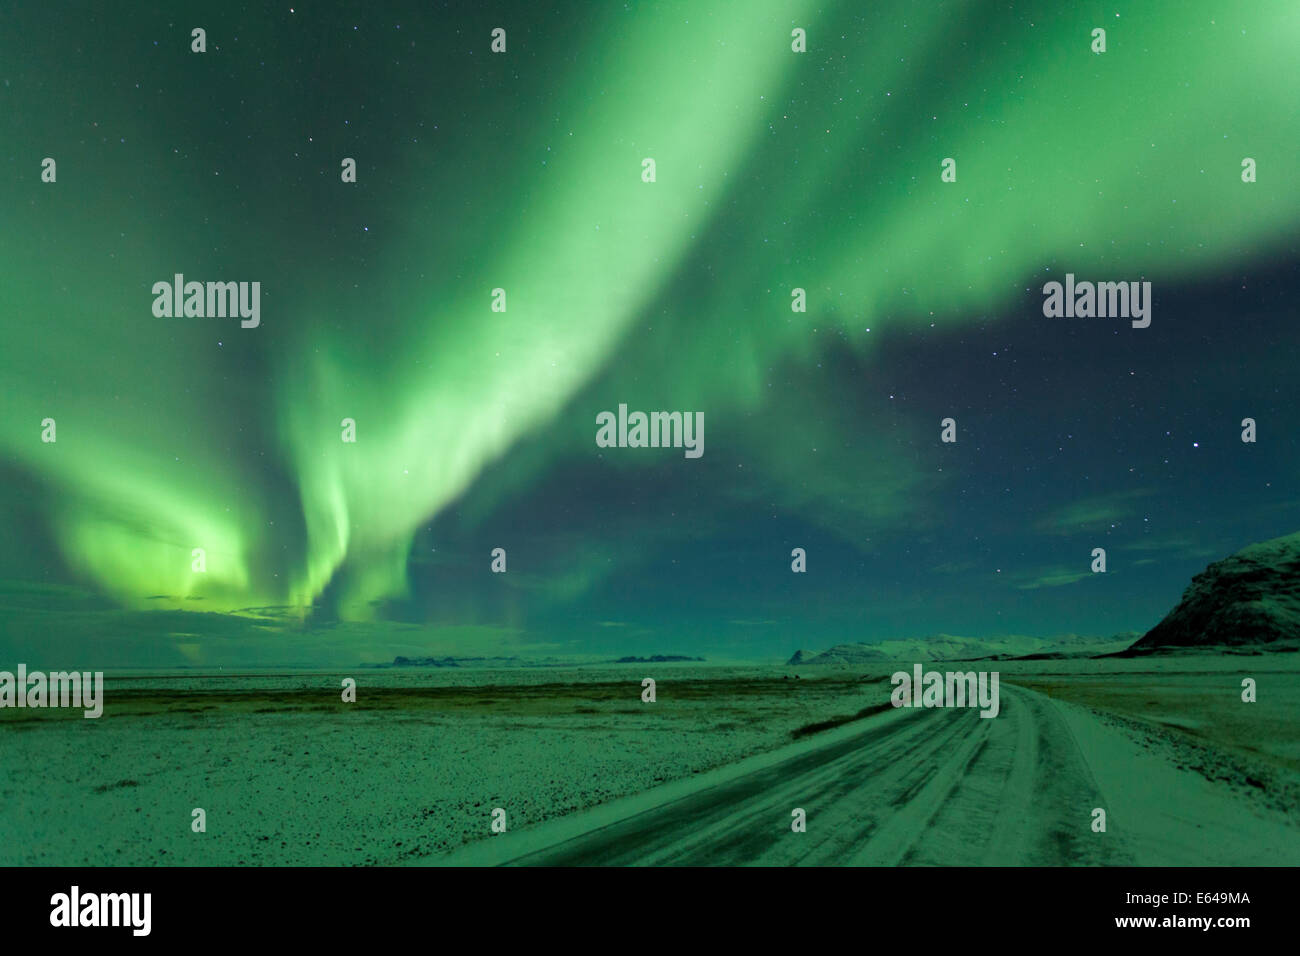 Northern Lights, Aurora Borealis, Winter road with snow, Iceland - Stock Image